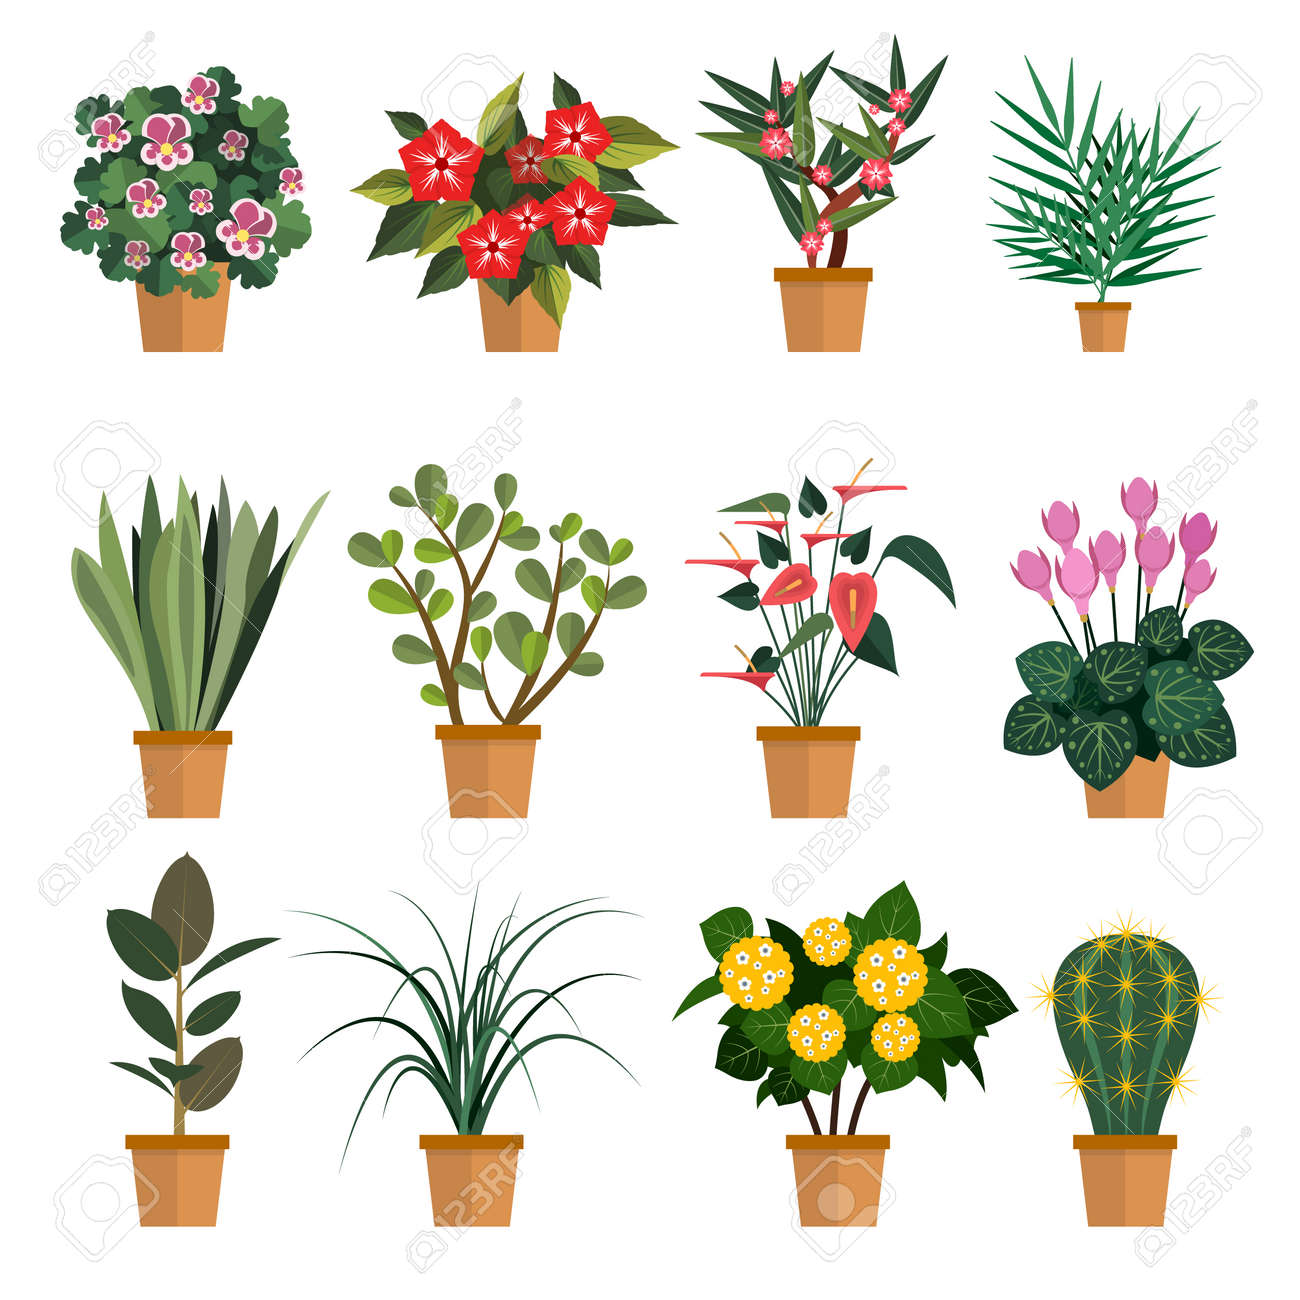 Vector Set Of Flowers Illustration With Different Types Of Pot